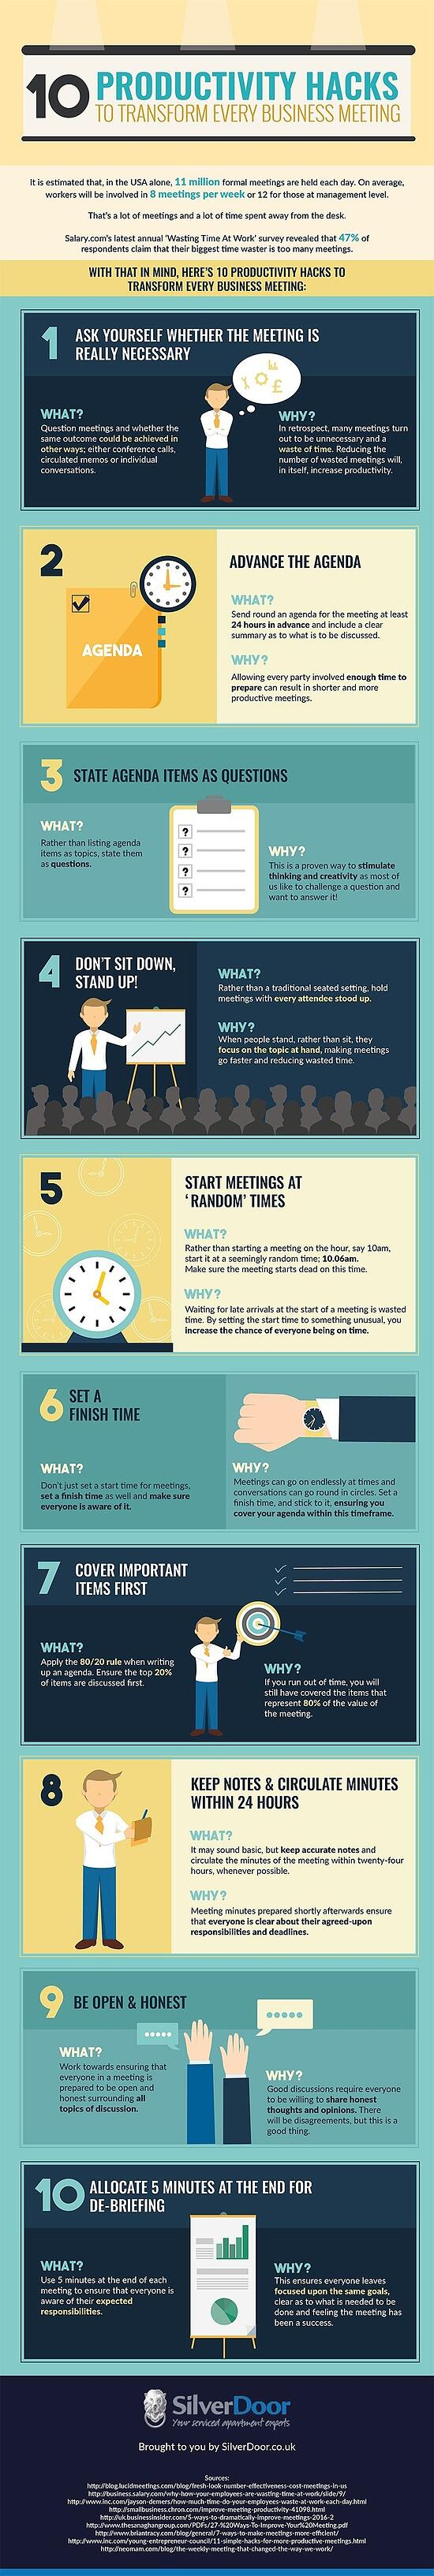 10 Tips To Stop Wasting Time in Meetings